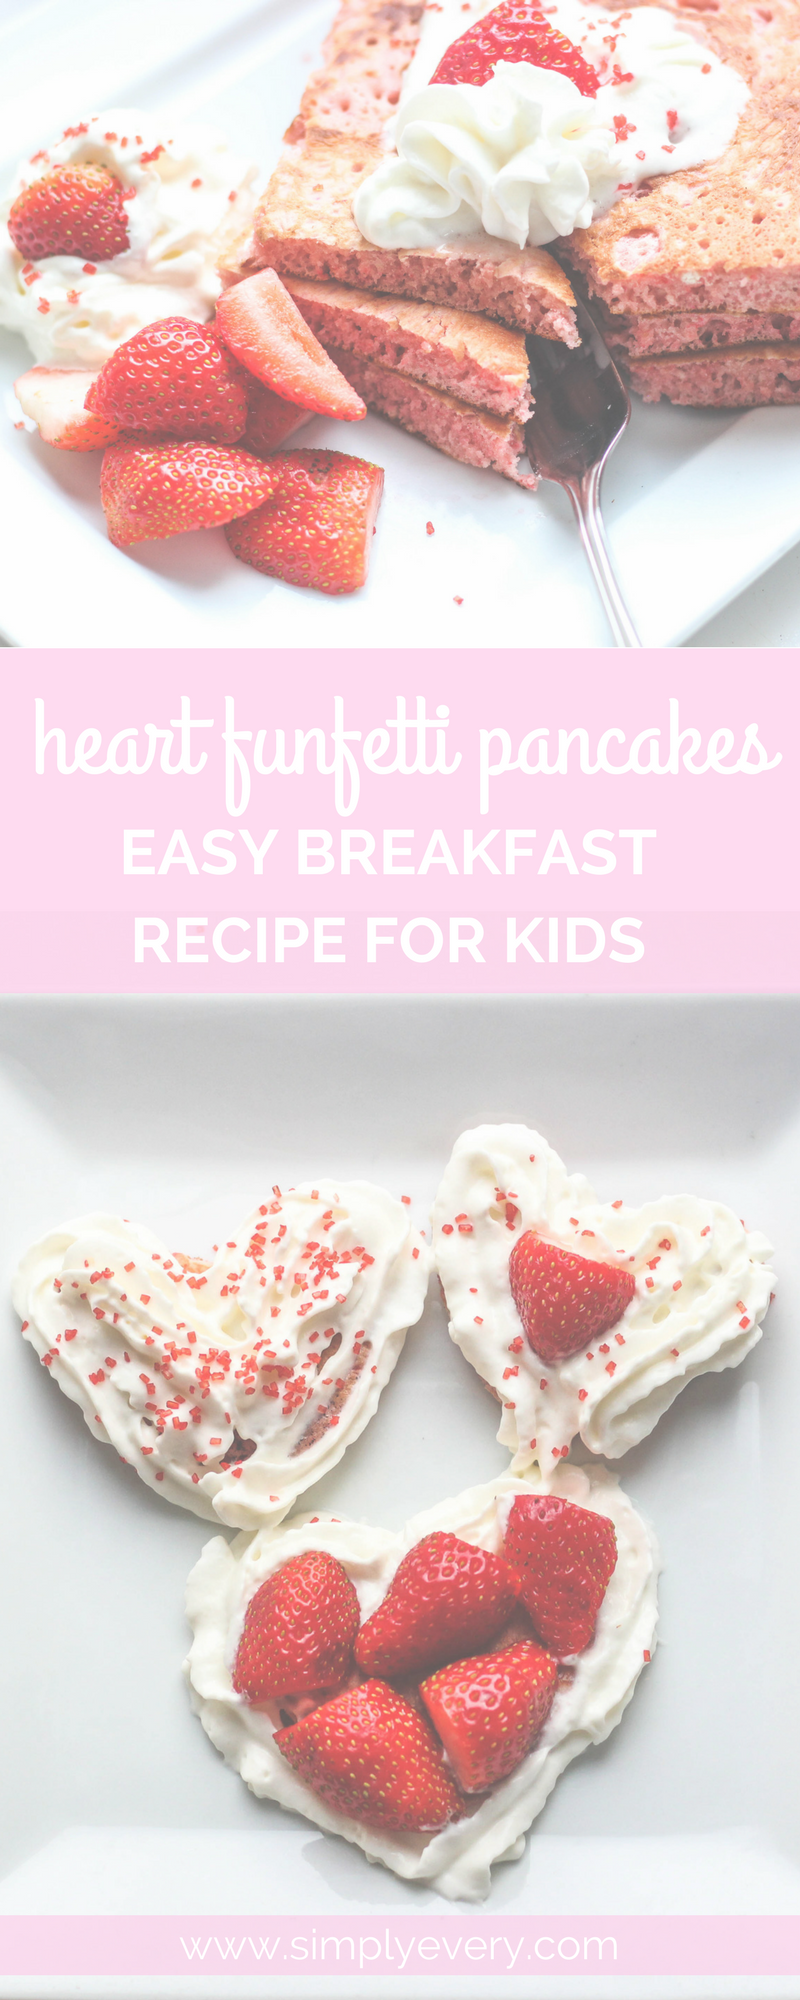 Heart Funfetti Pancakes Easy Breakfast Recipe for Kids